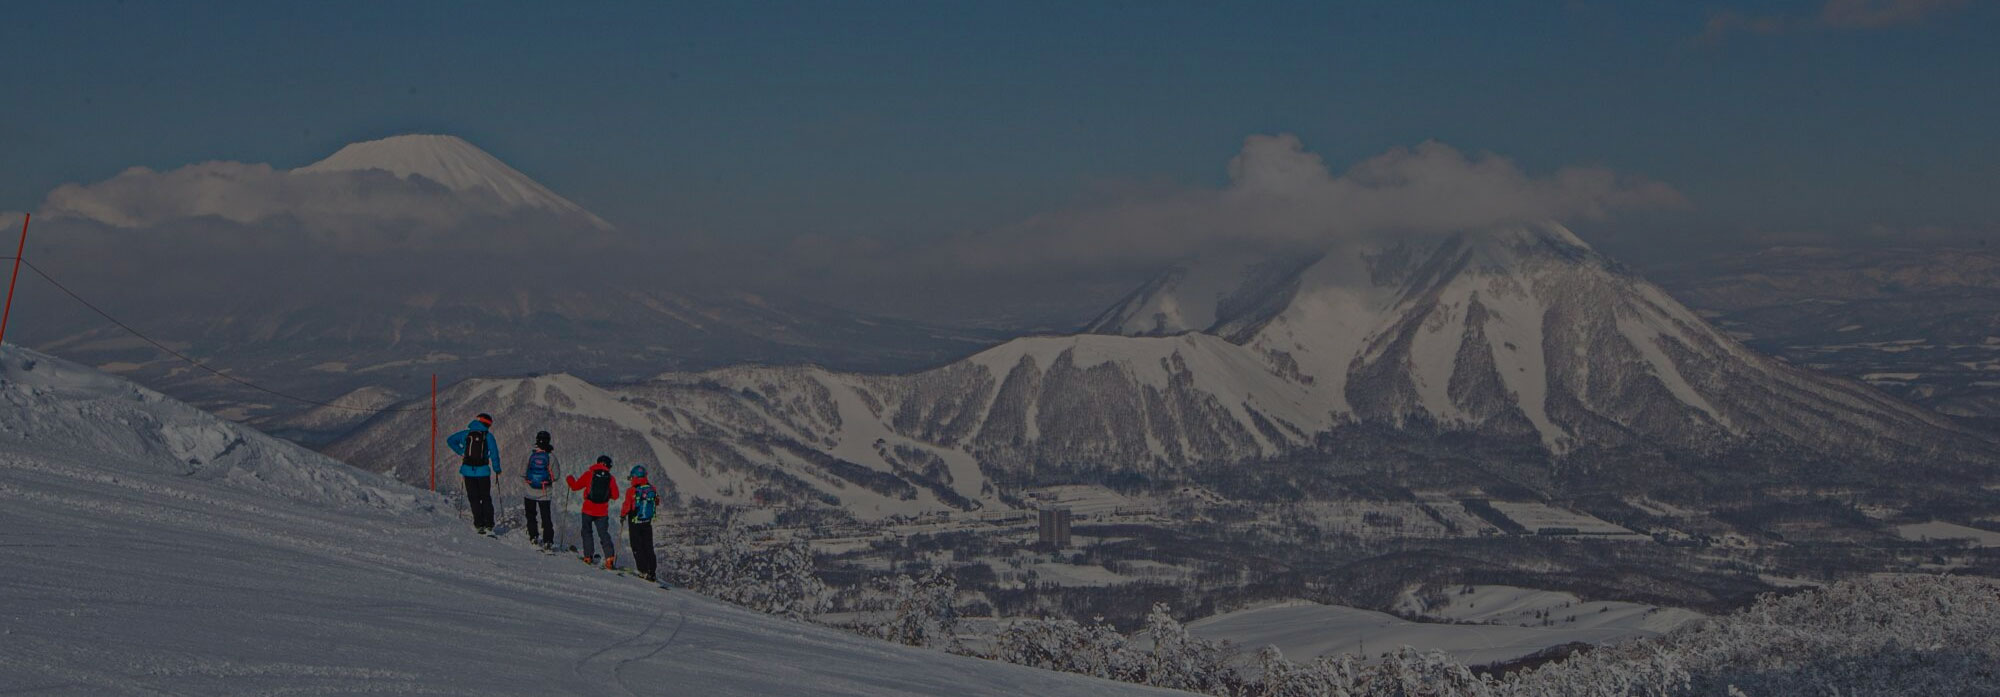 guided ski trips, all inclusive ski trips, group trips